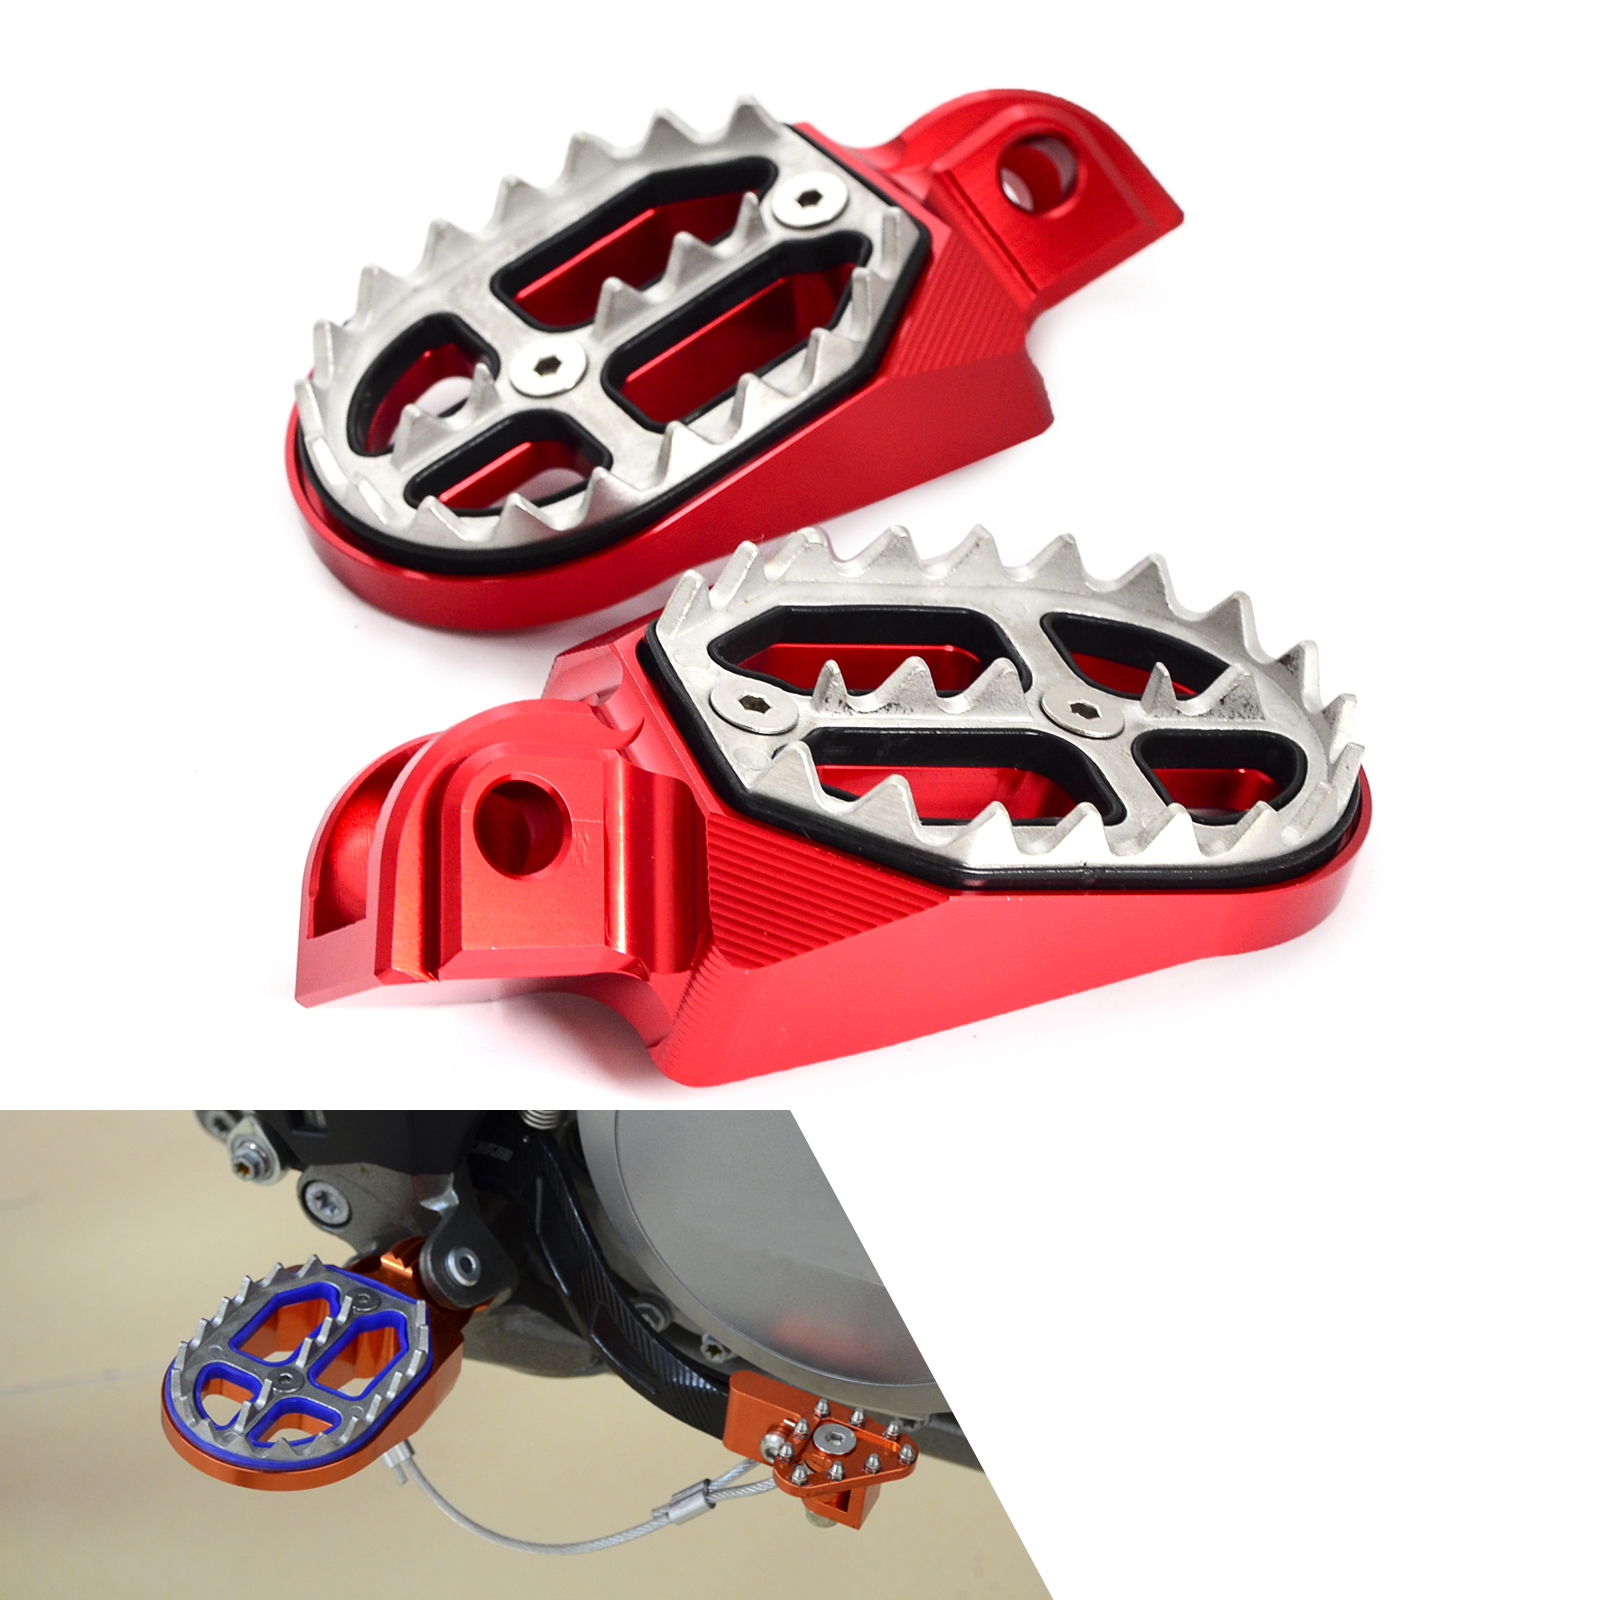 Footpeg Foot Rest Pegs Pedal For <font><b>Beta</b></font> 125RR 250RR 350RR 450RR 125 250 300 <font><b>350</b></font> 390 400 430 450 480 498 520 525 <font><b>RR</b></font> Motard XTrainer image